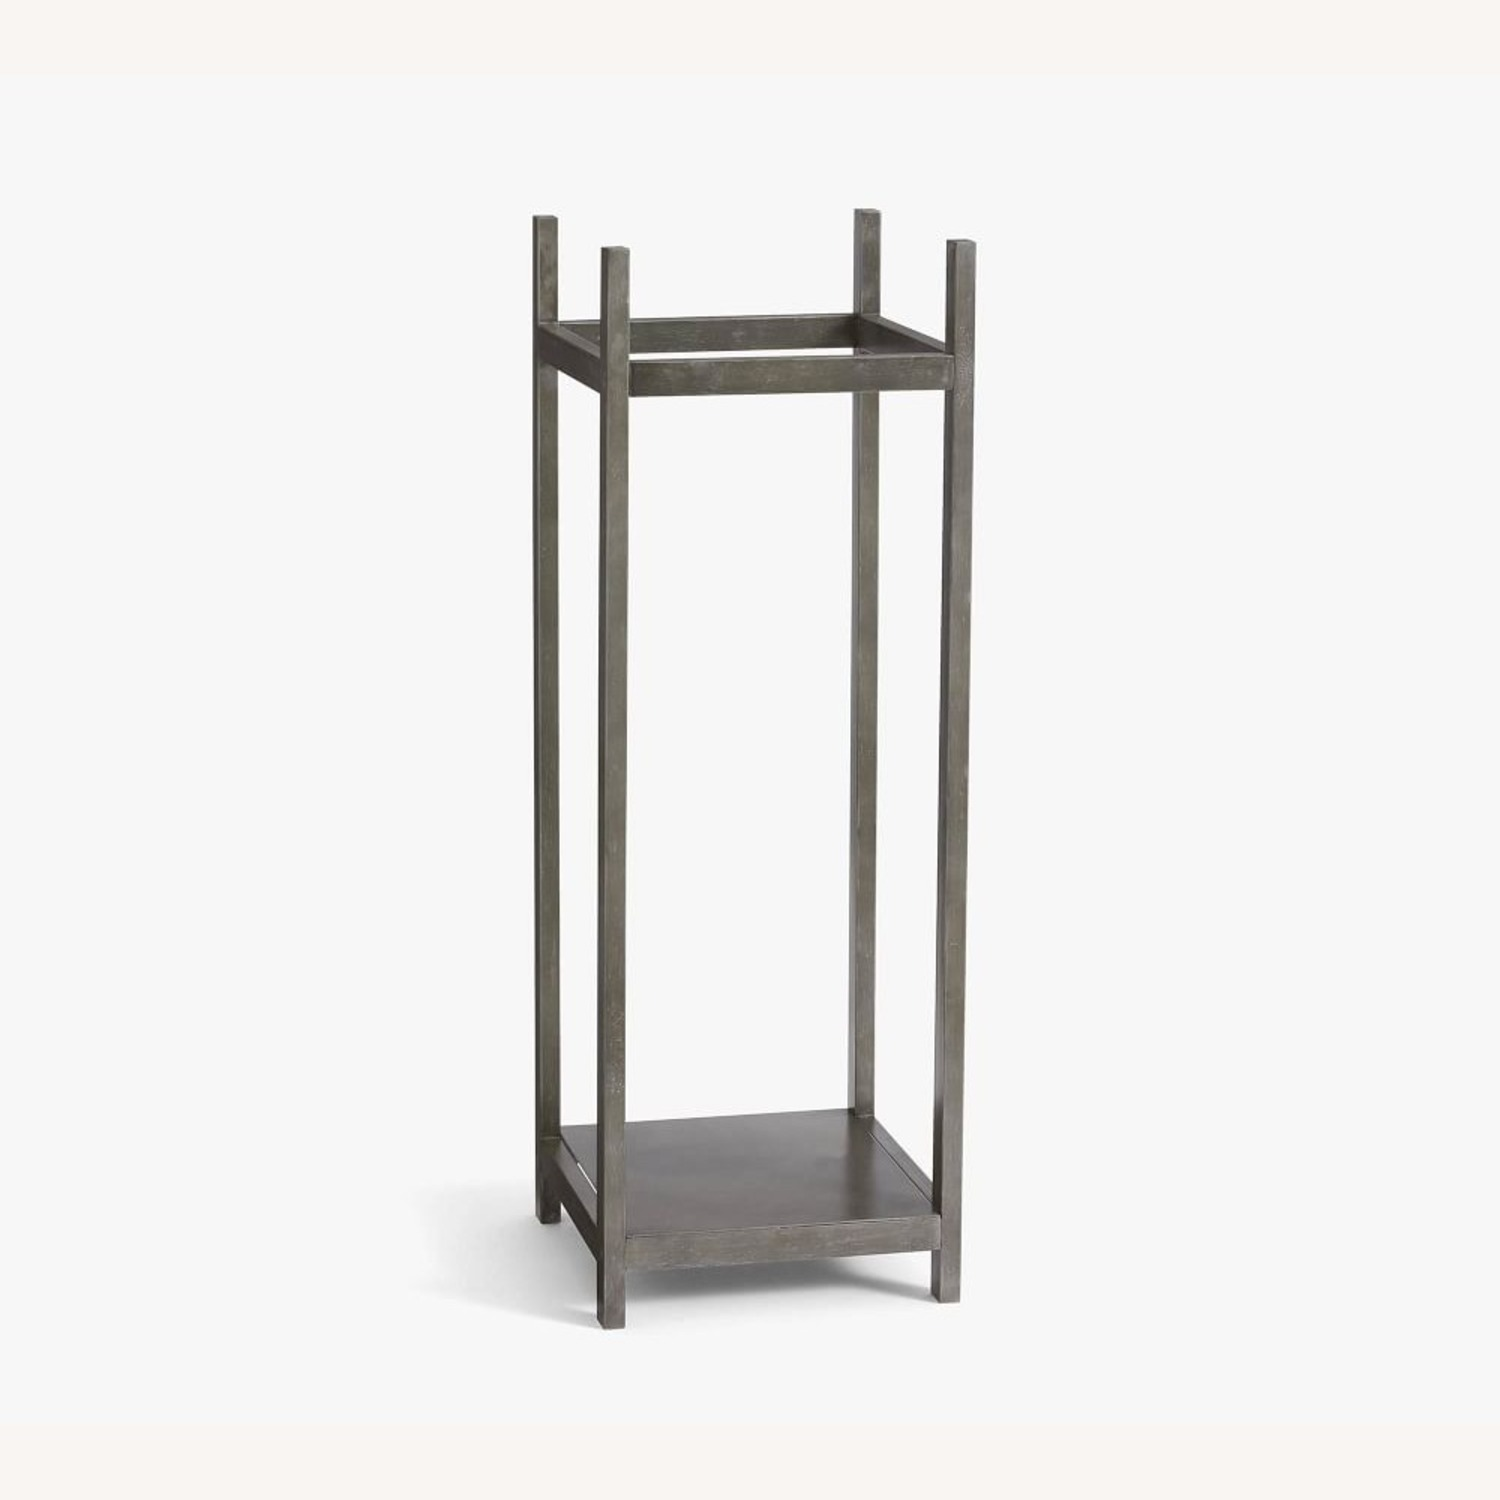 Pottery Barn Industrial Fireplace Log Holder Tower - image-3